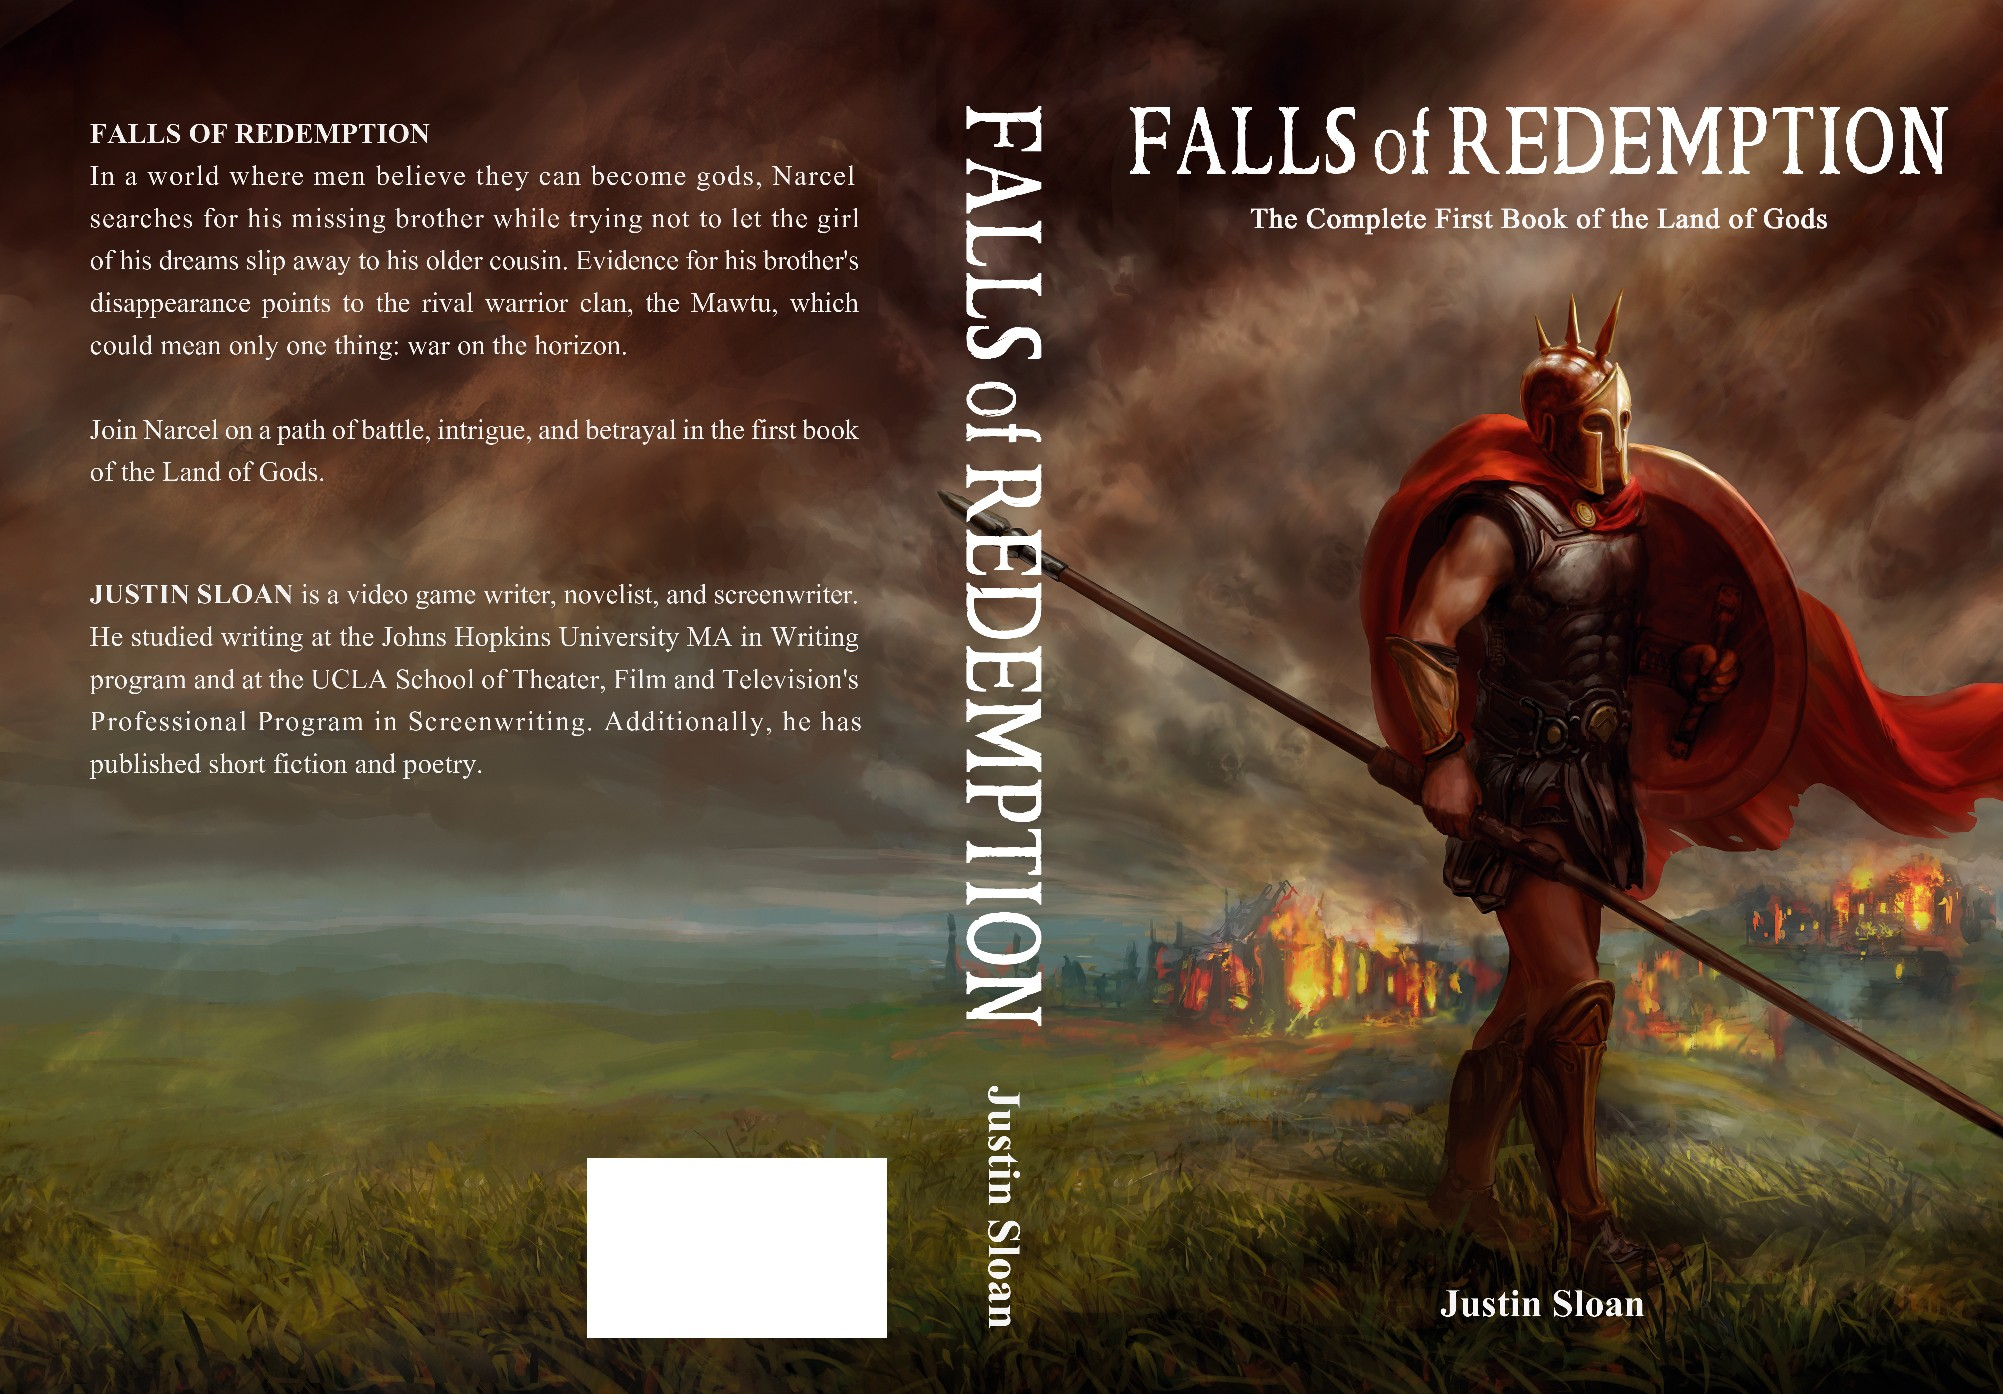 Falls of Redemption